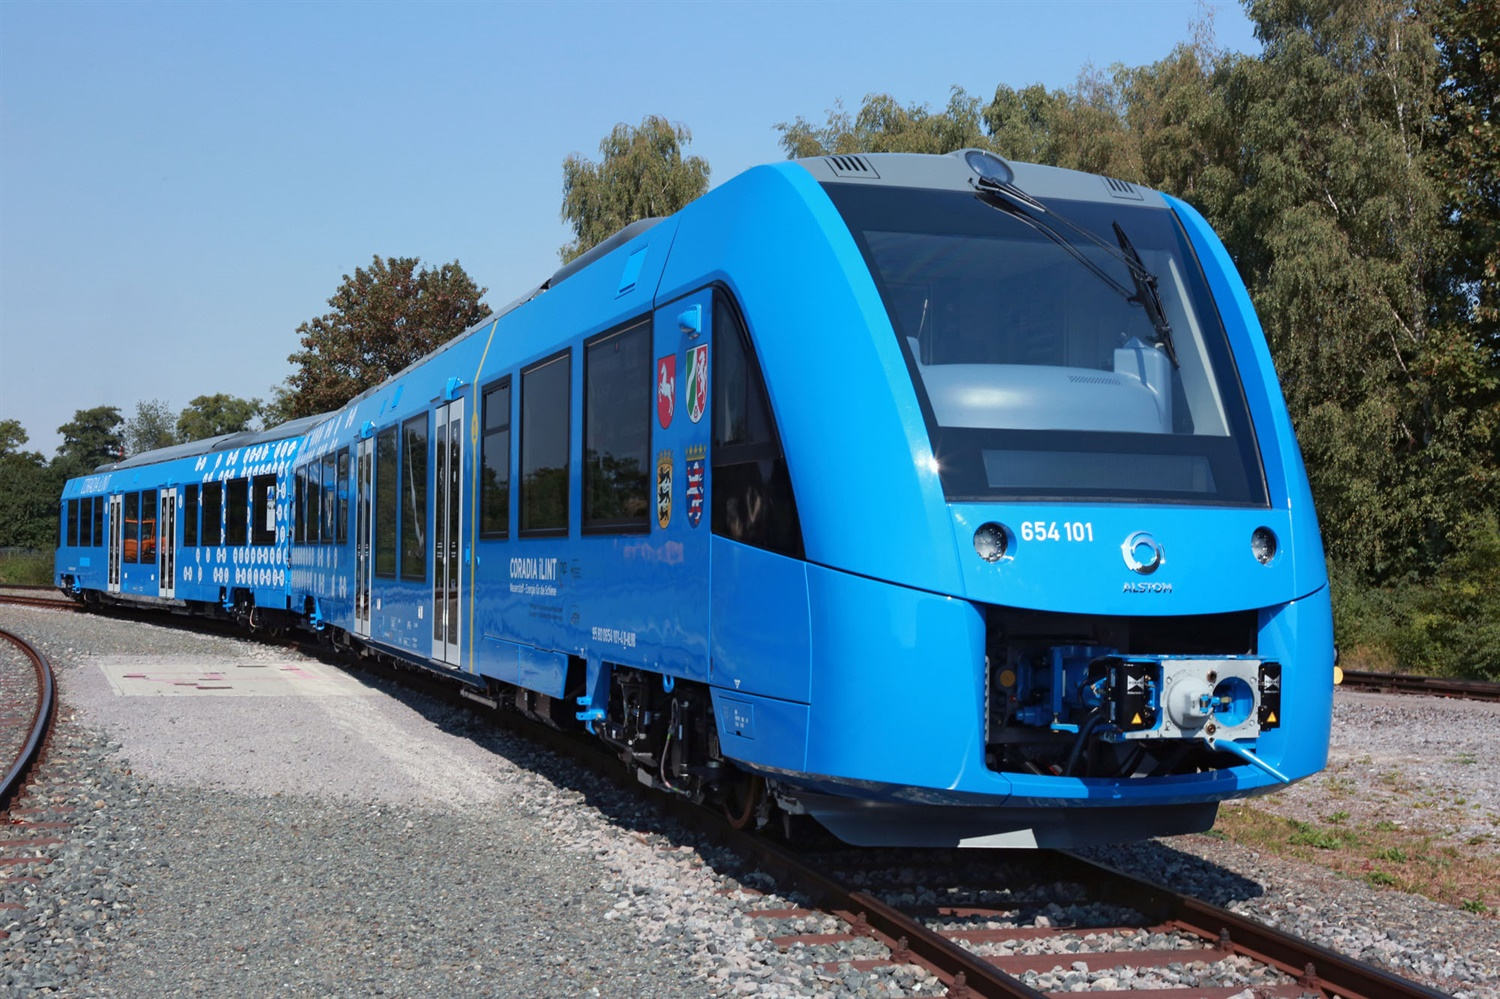 Alstom and Eversholt team up to fit hydrogen tanks on Class 321s